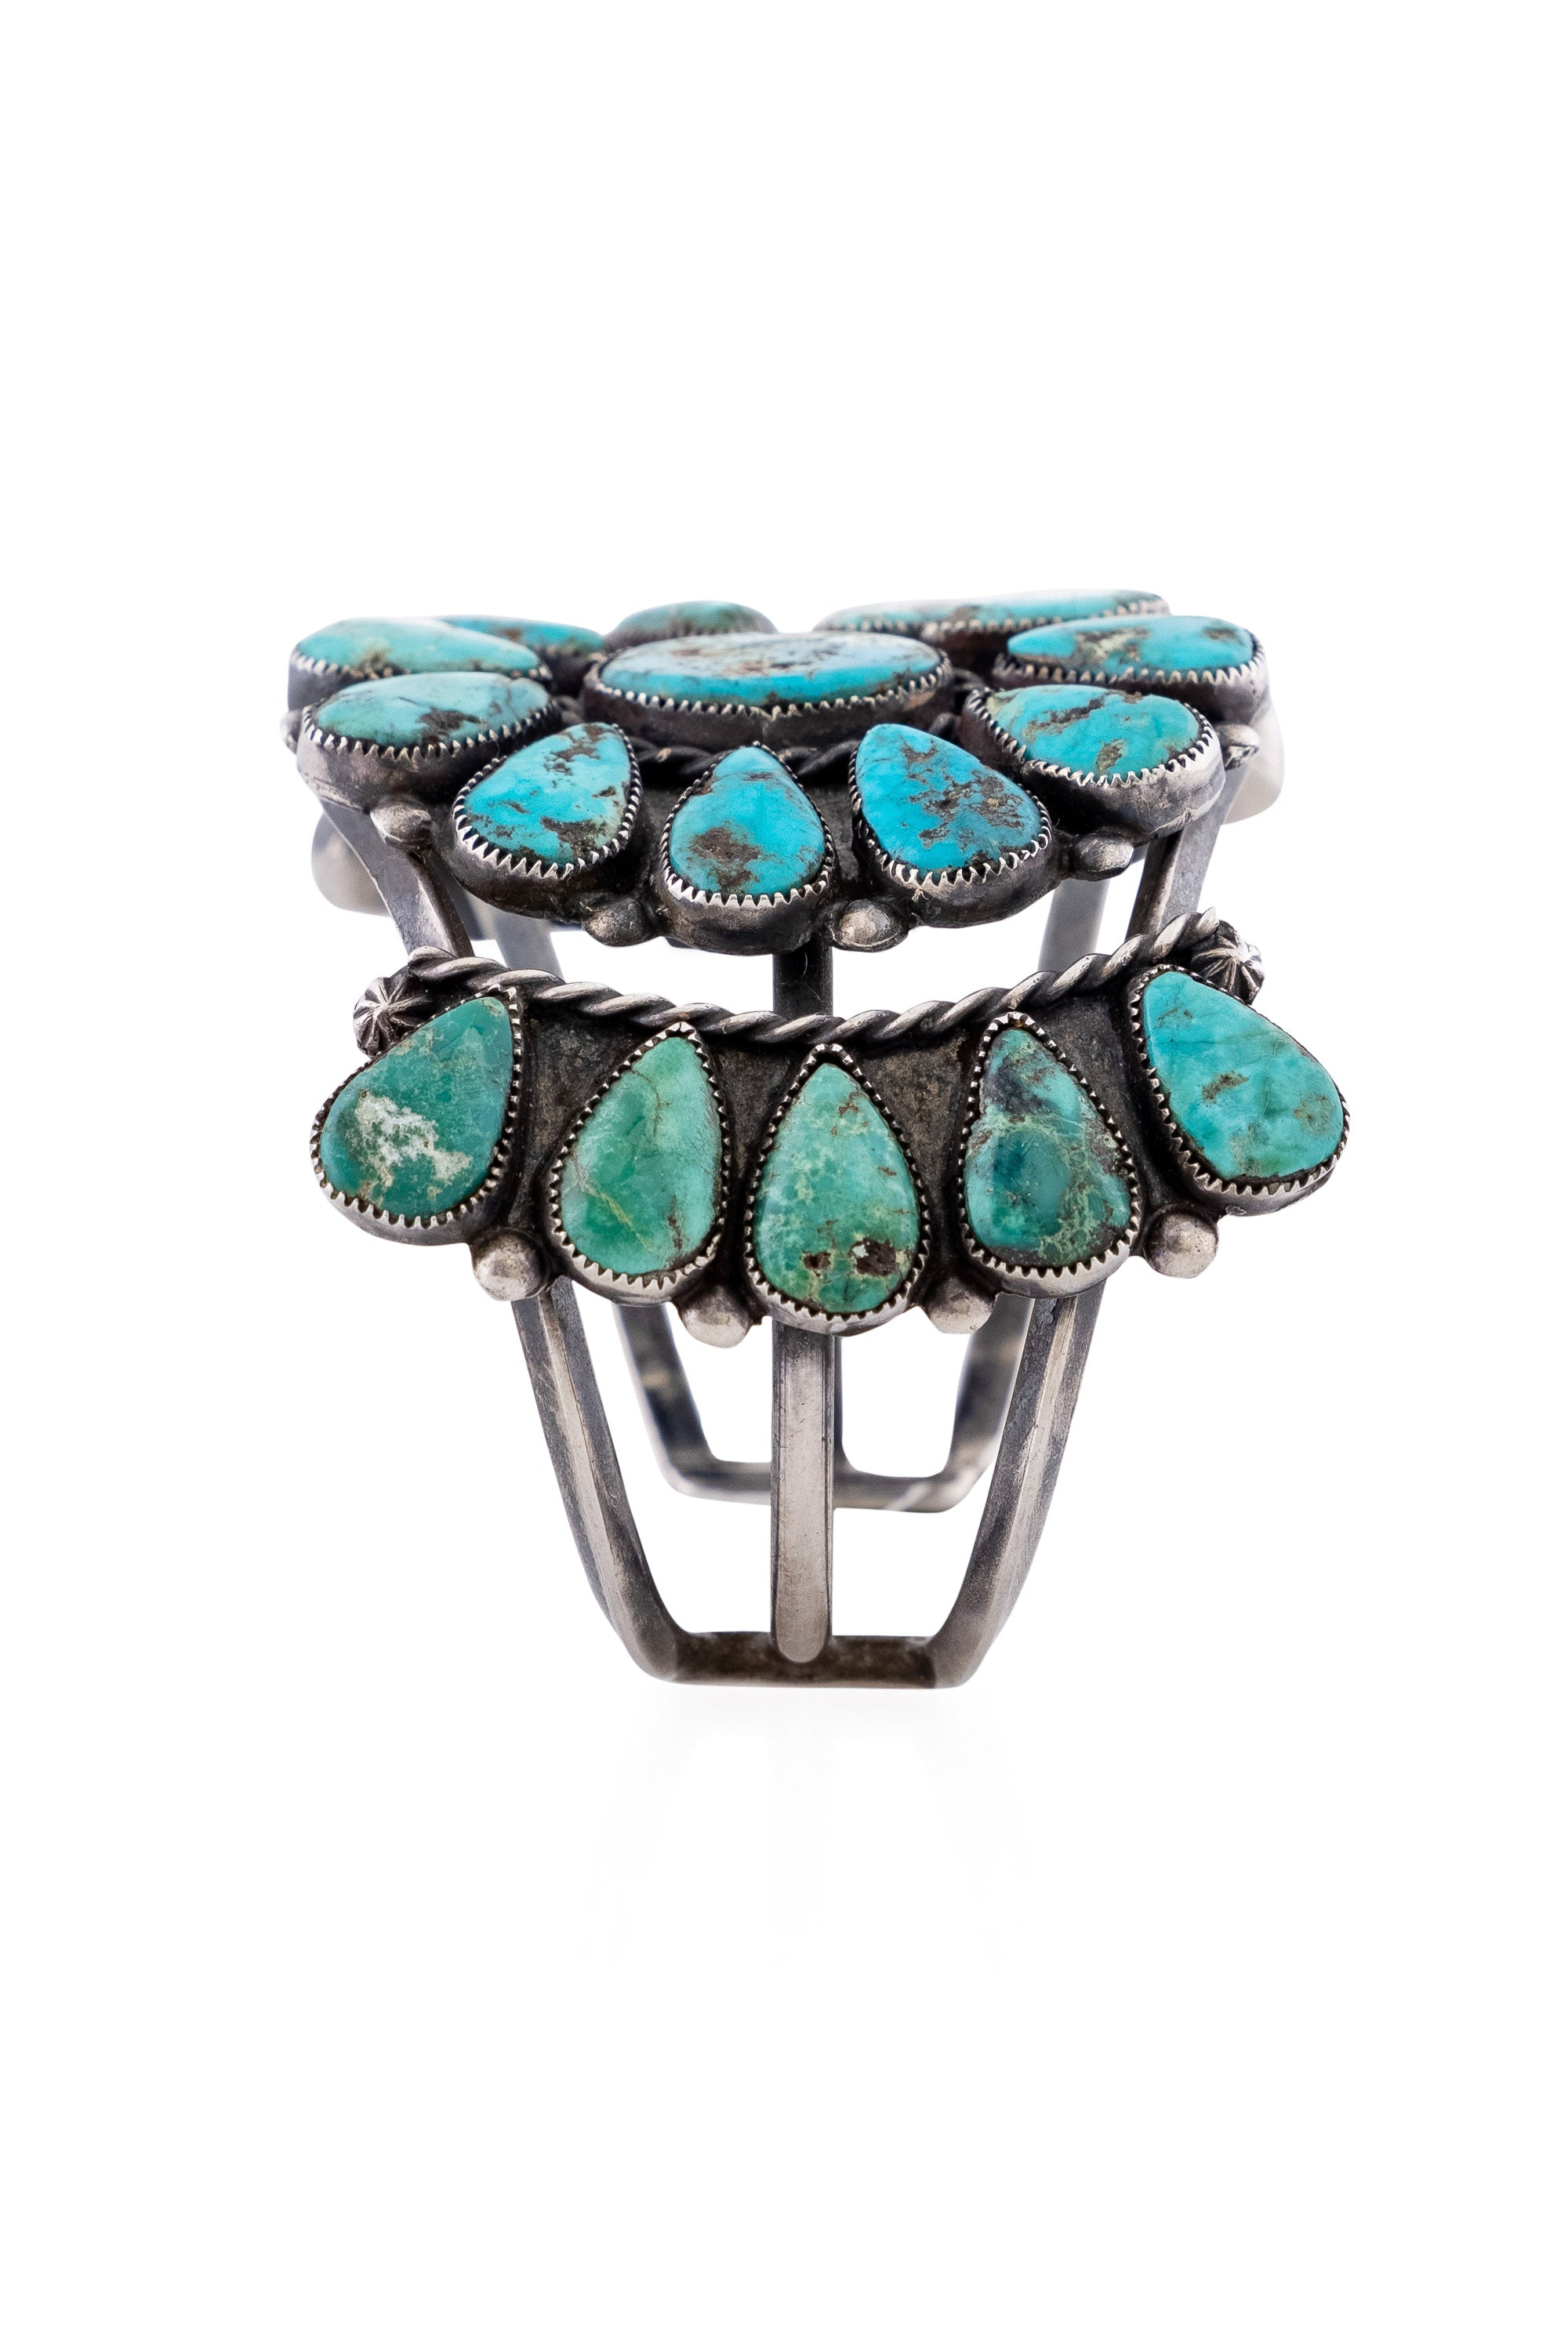 Cuff, Cluster, Turquoise, Navajo, Vintage, '60's, 2747